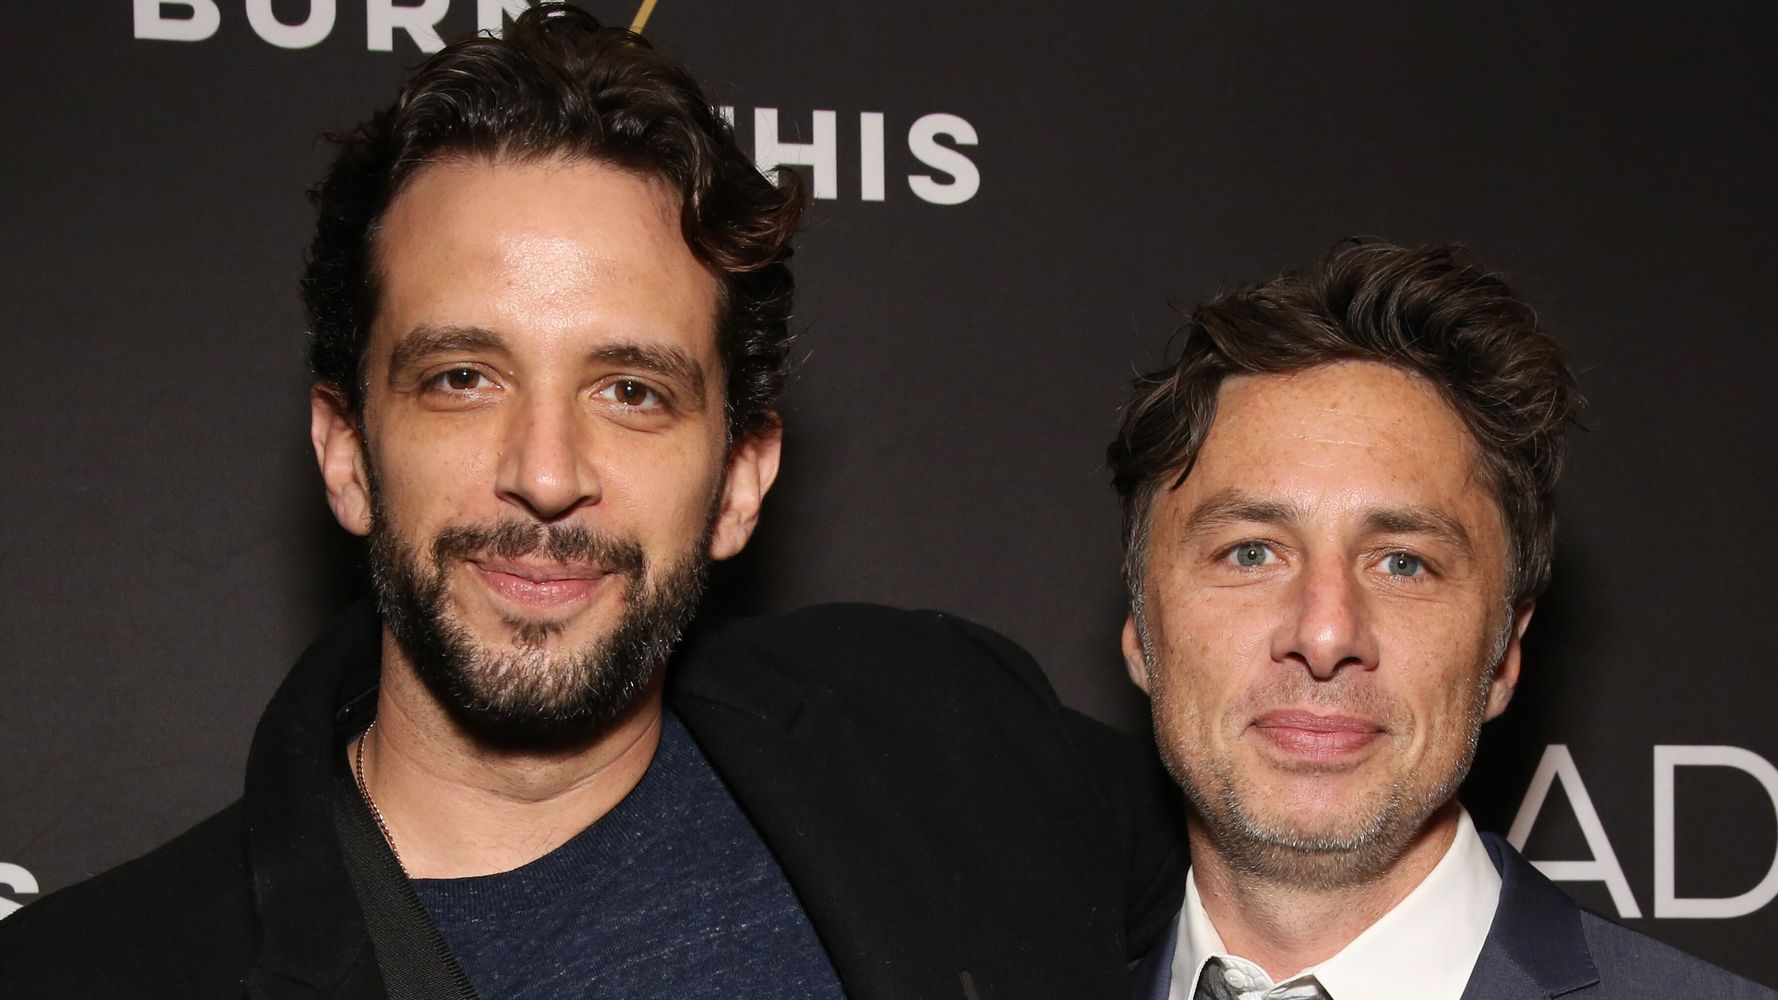 Zach Braff Gets Tattoo Of Nick Cordero To Honor His Late Friend And Co-star